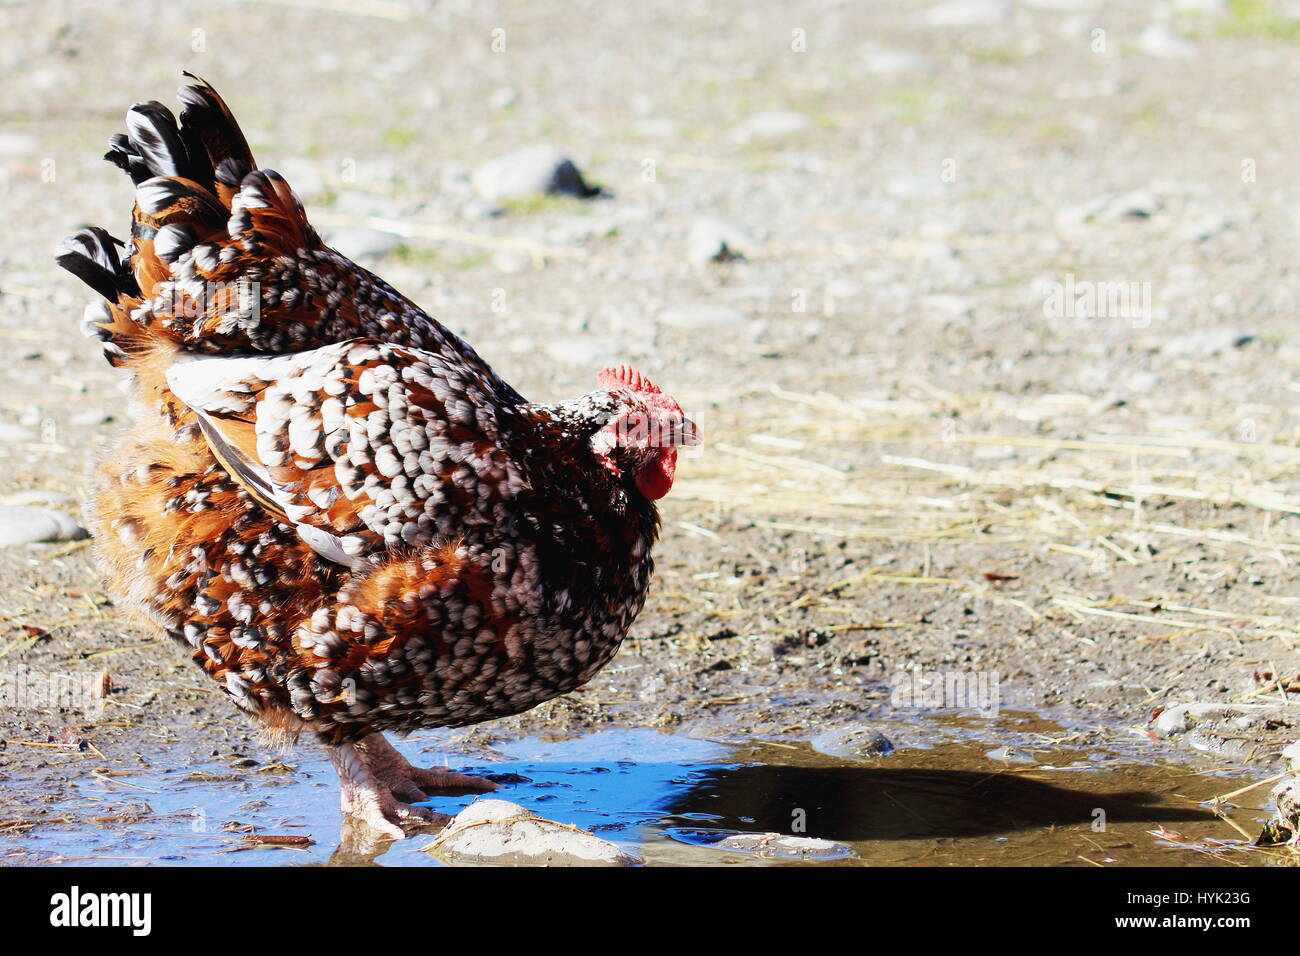 Speckled sussex hen in the farmyard. Orana Wildlife Park, Christchurch, New Zealand - Stock Image